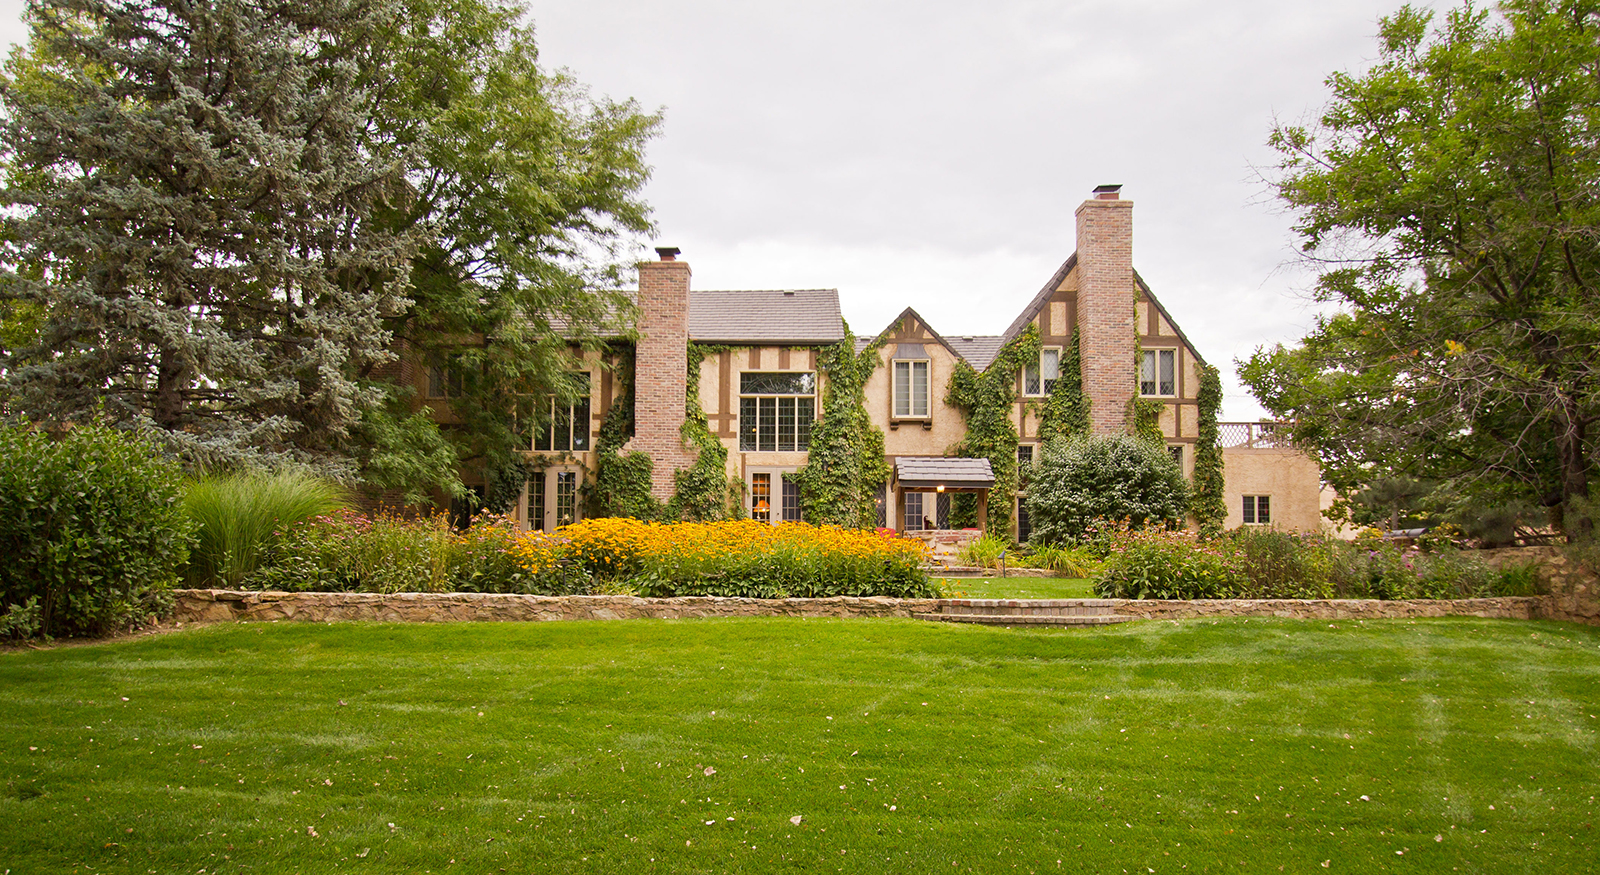 Pictured: 6133 Buss Grove Road, Timnath, Colorado. Listed by LIV Sotheby's International Realty for $3,500,000.